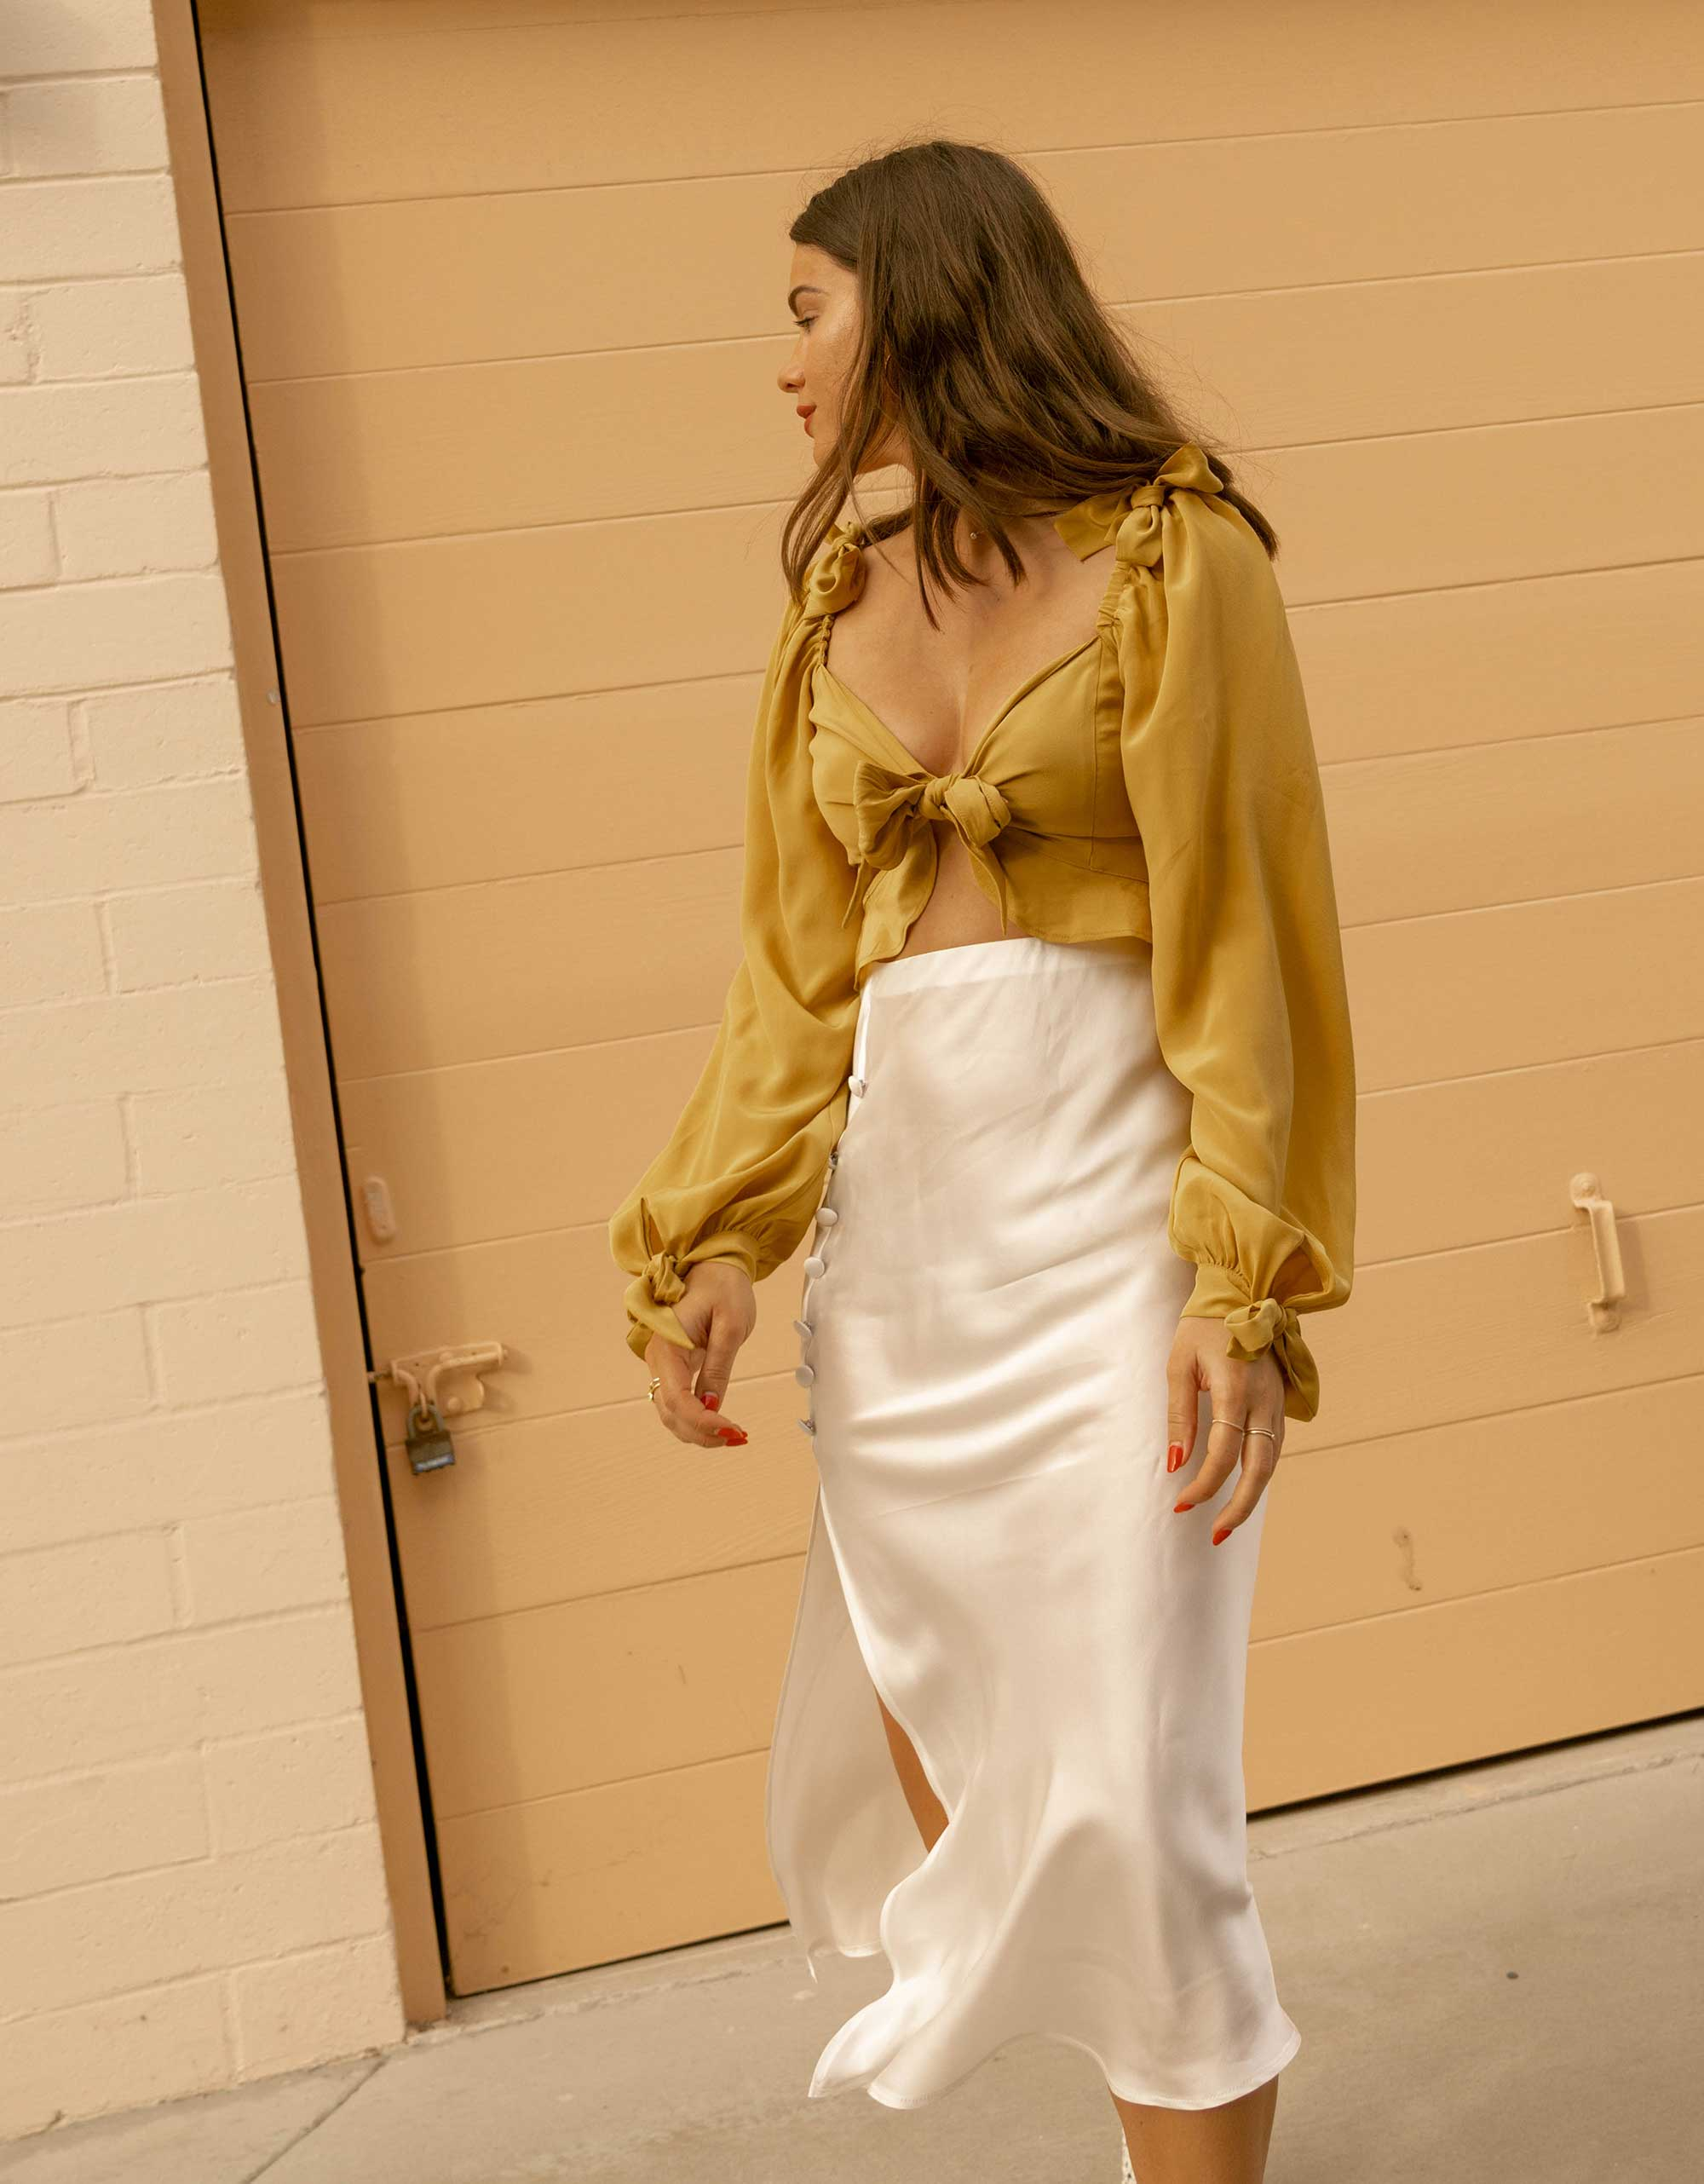 Silk Skirts for Spring - Yellow bell sleeve crop top and side slit silk midi skirt in Newport Beach, California for the perfect spring outfit